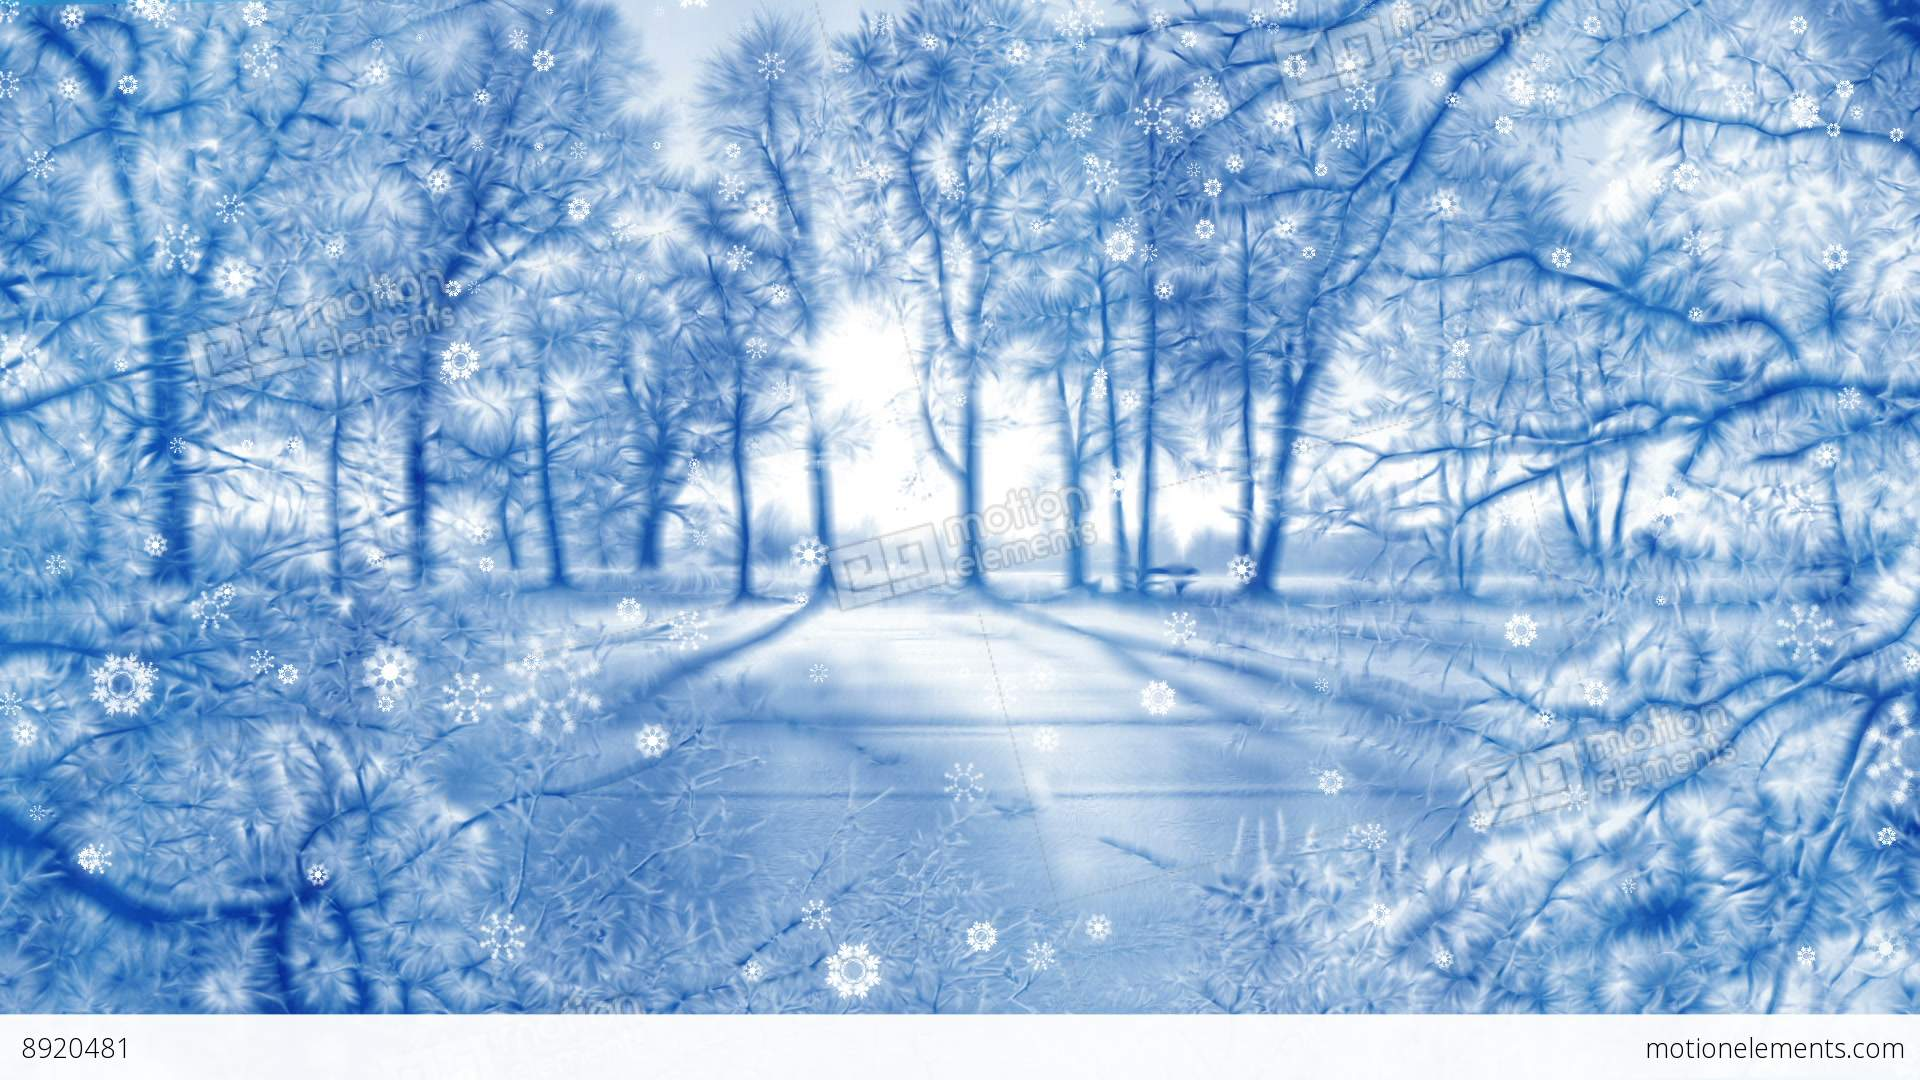 Falling Snow Animated Wallpaper Winter Background Animation Loop Stock Animation 8920481